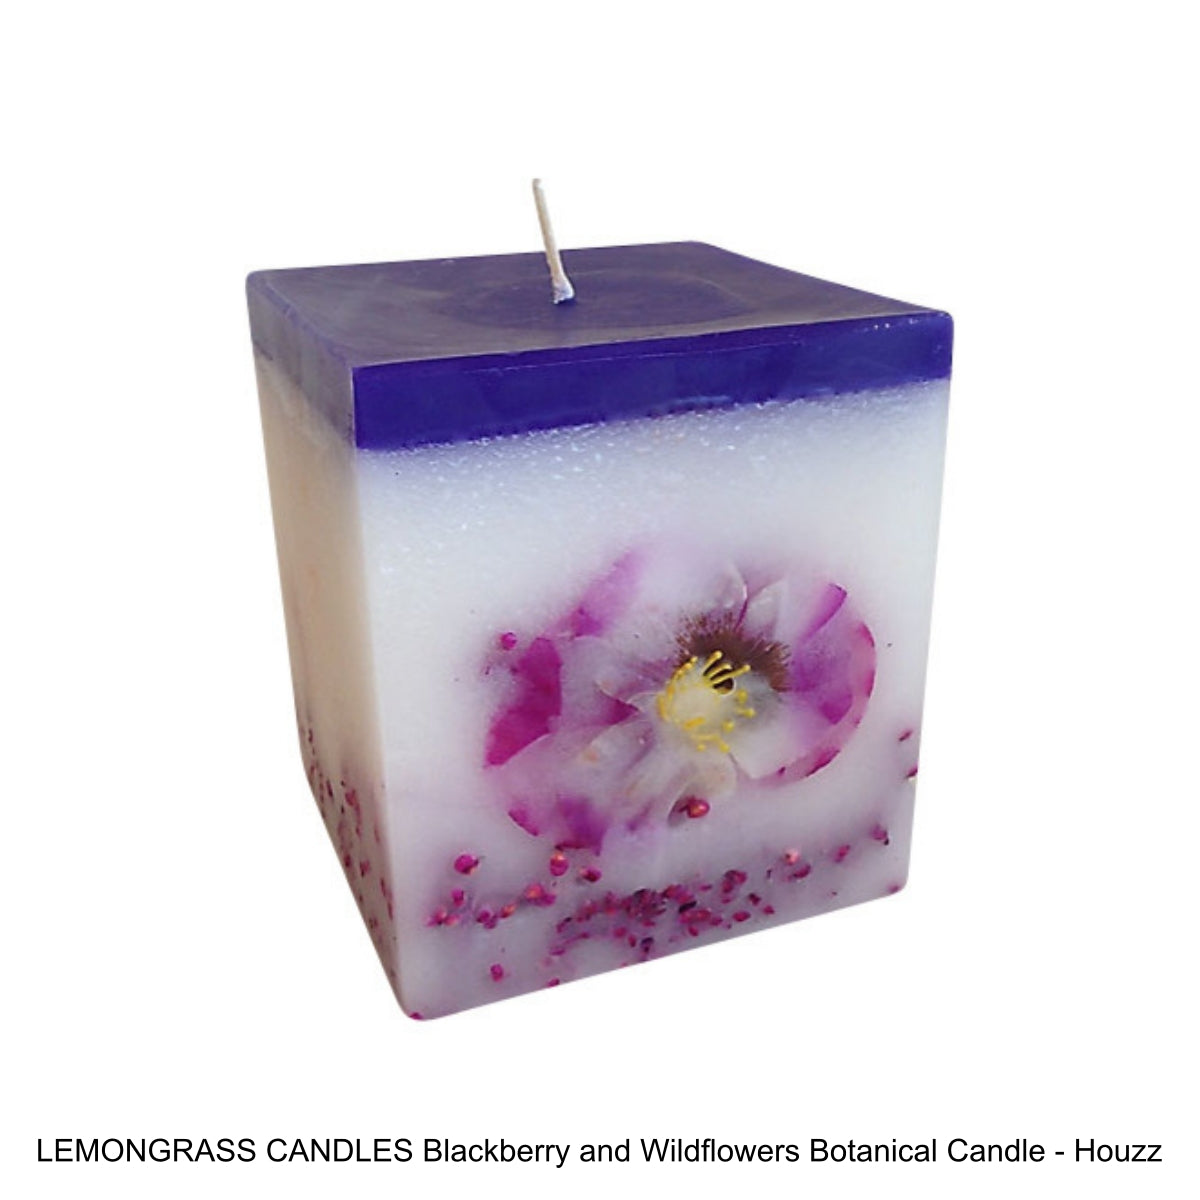 LEMONGRASS CANDLES Blackberry and Wildflowers Botanical Candle - Houzz